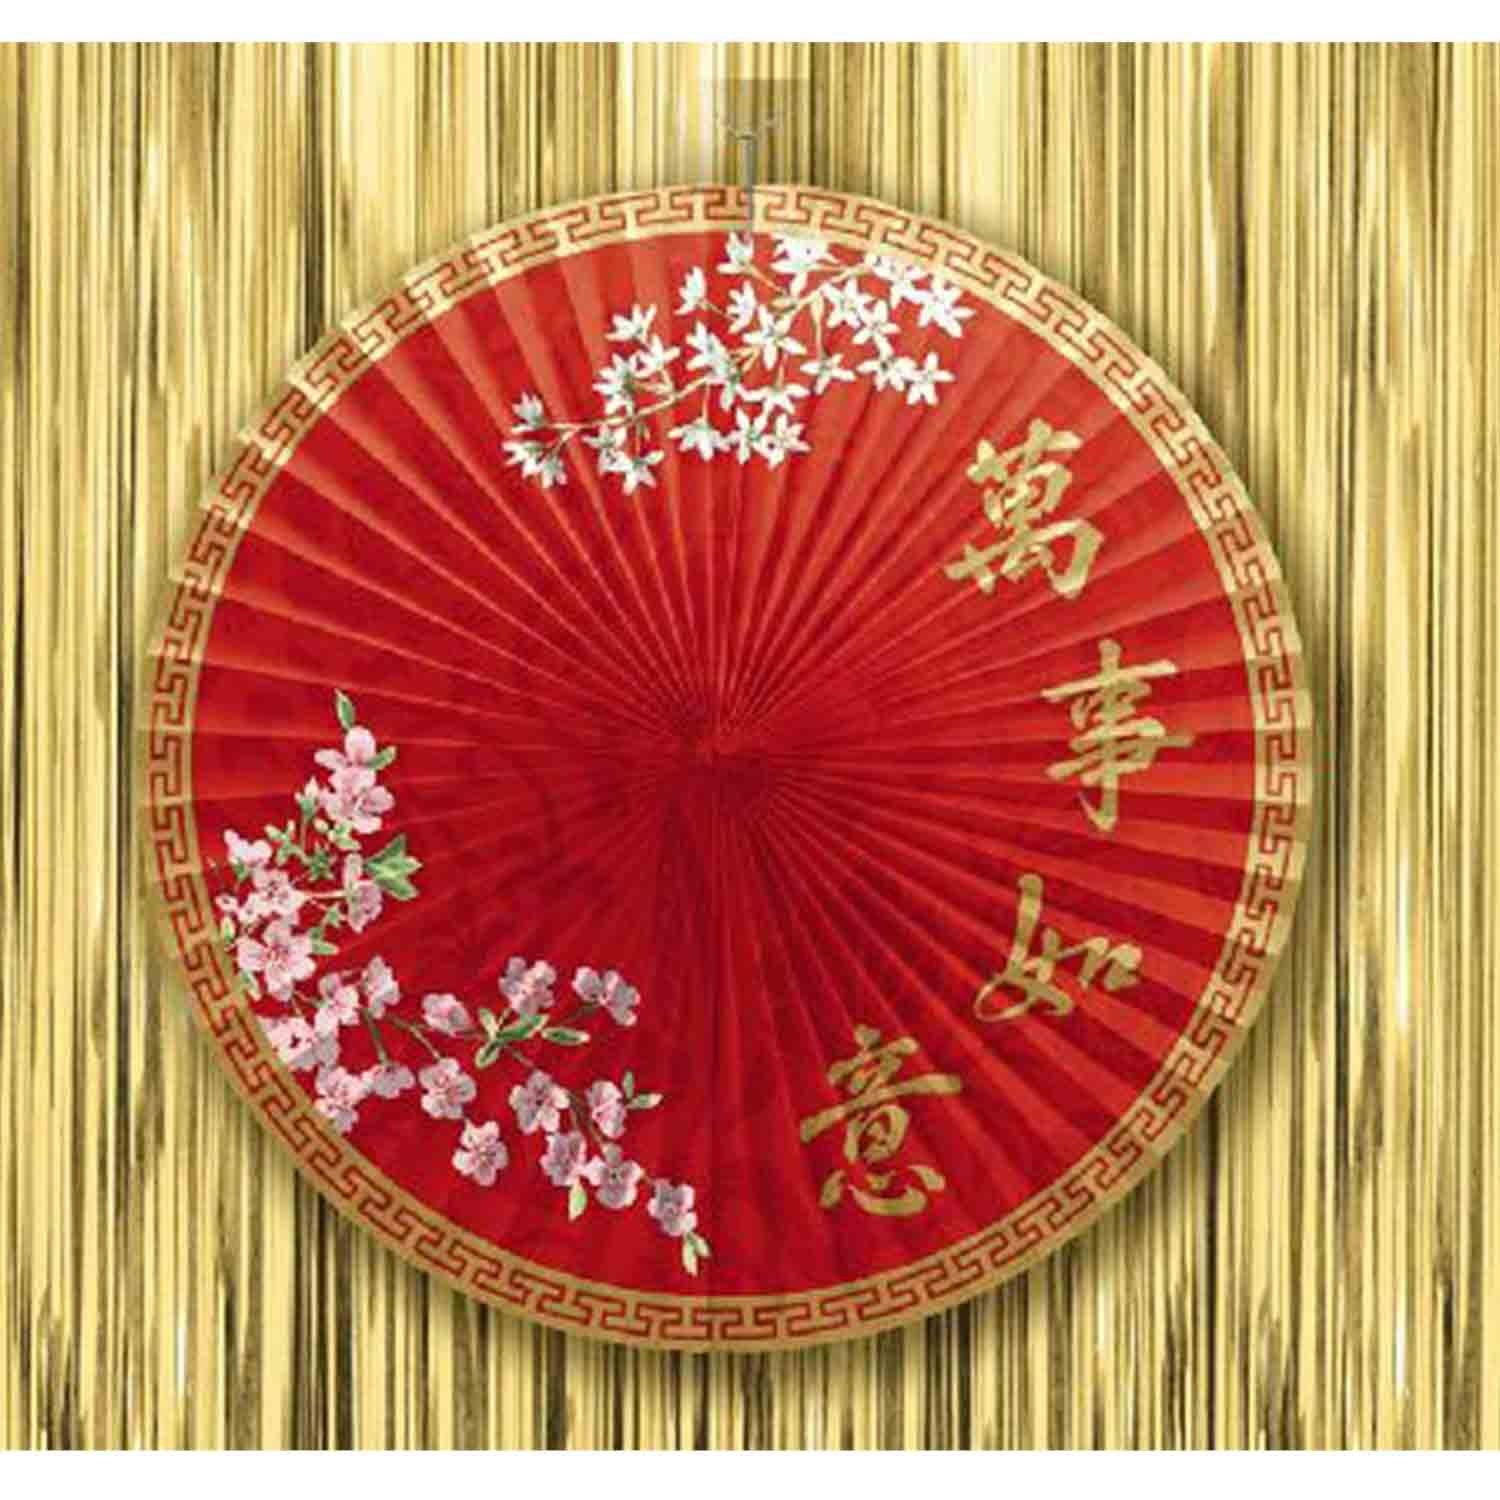 Chinese New Year Paper Parasol Decoration 40cm